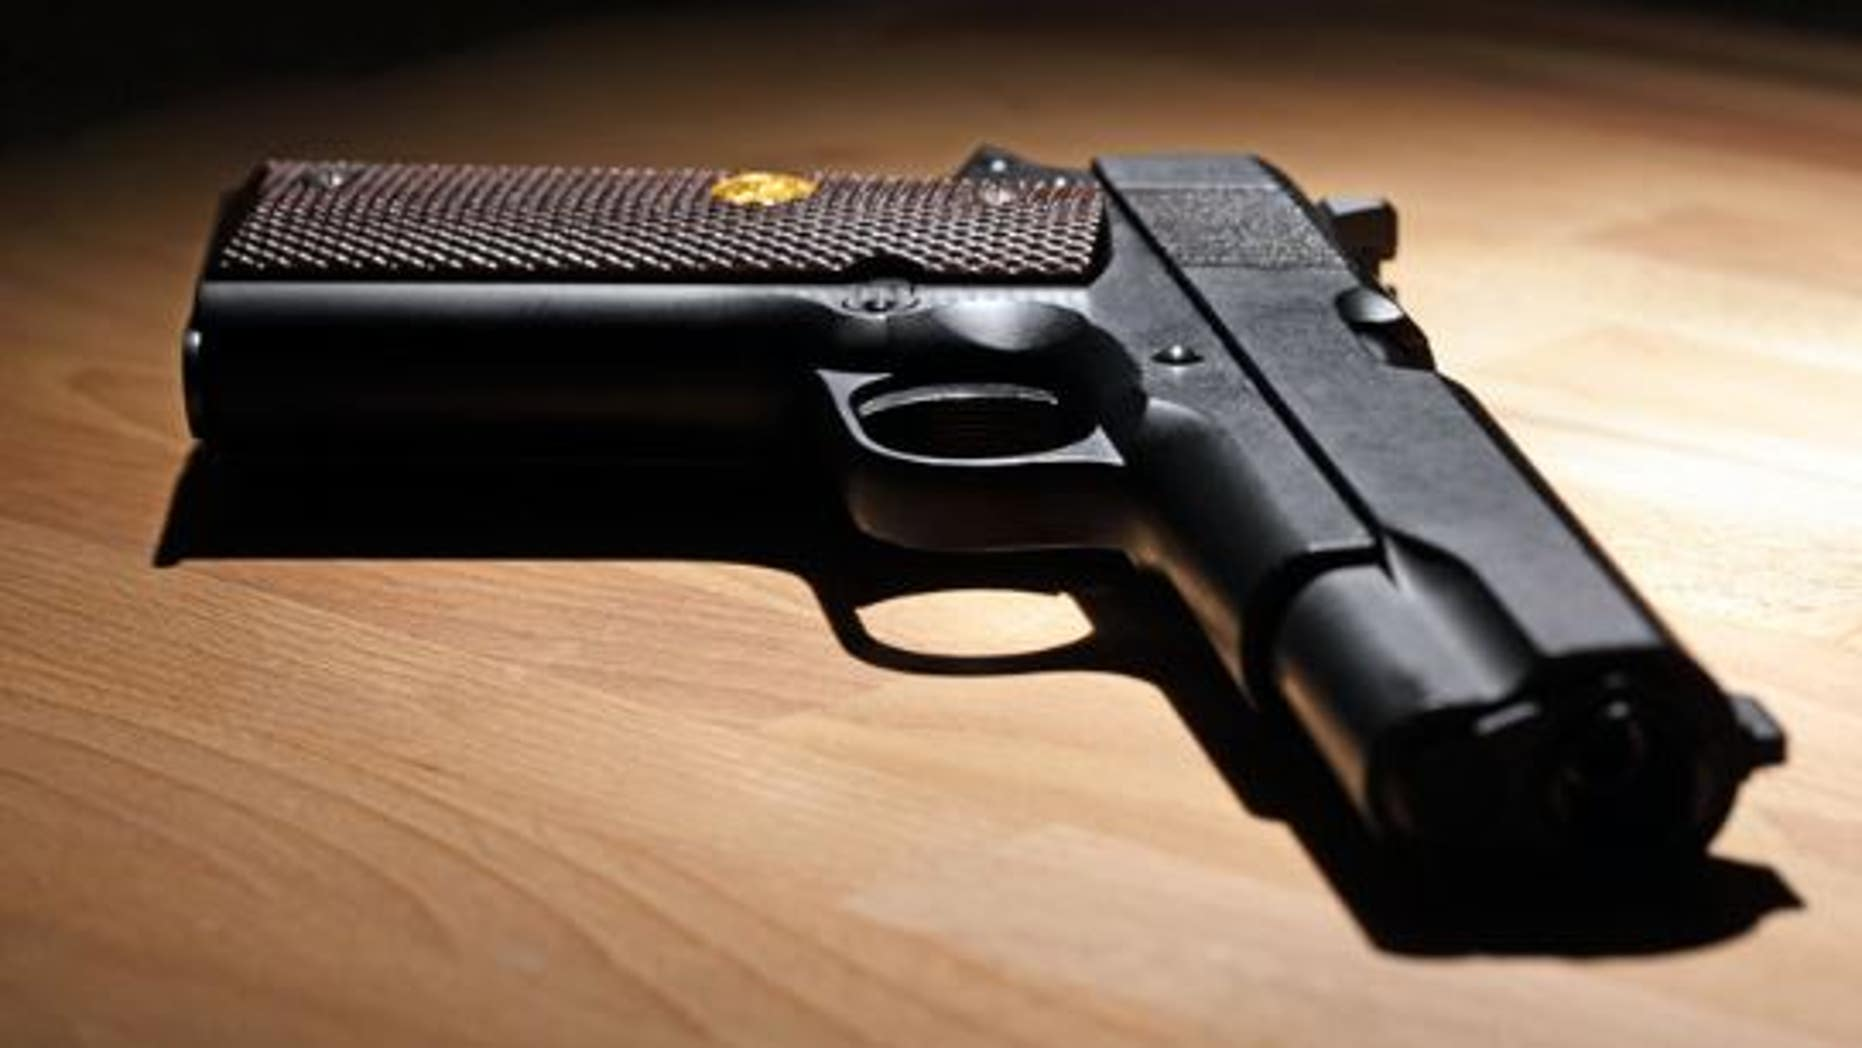 A man in Marion, Ind. accidentally shot himself in the genitals last week after trying to adjust a gun that was in his waistband without a holster, police said.